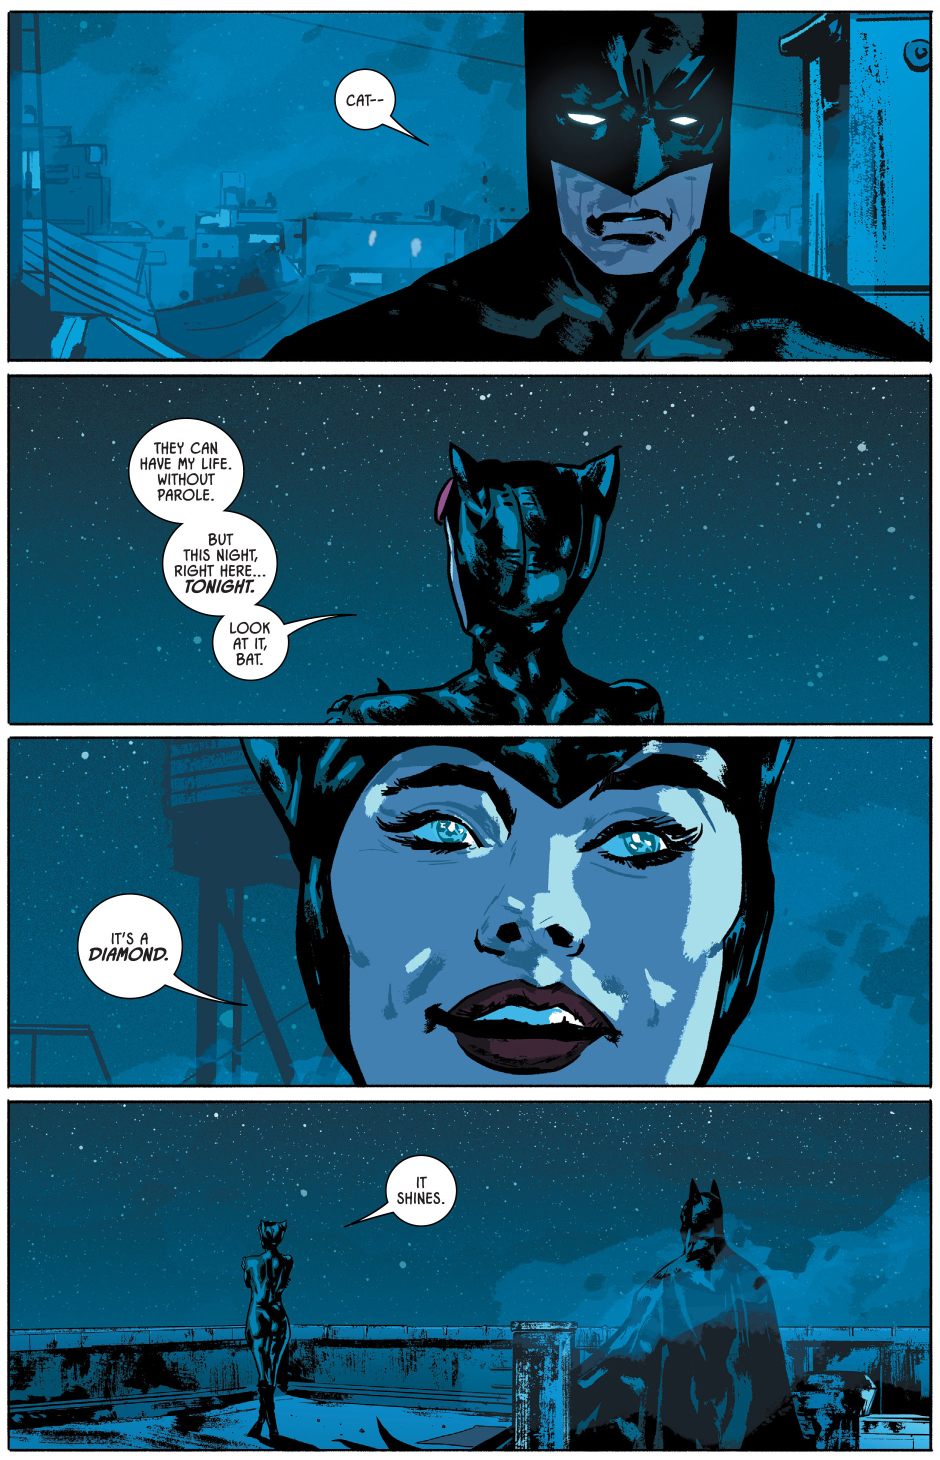 catwoman seduces batman rebirth comicnewbies